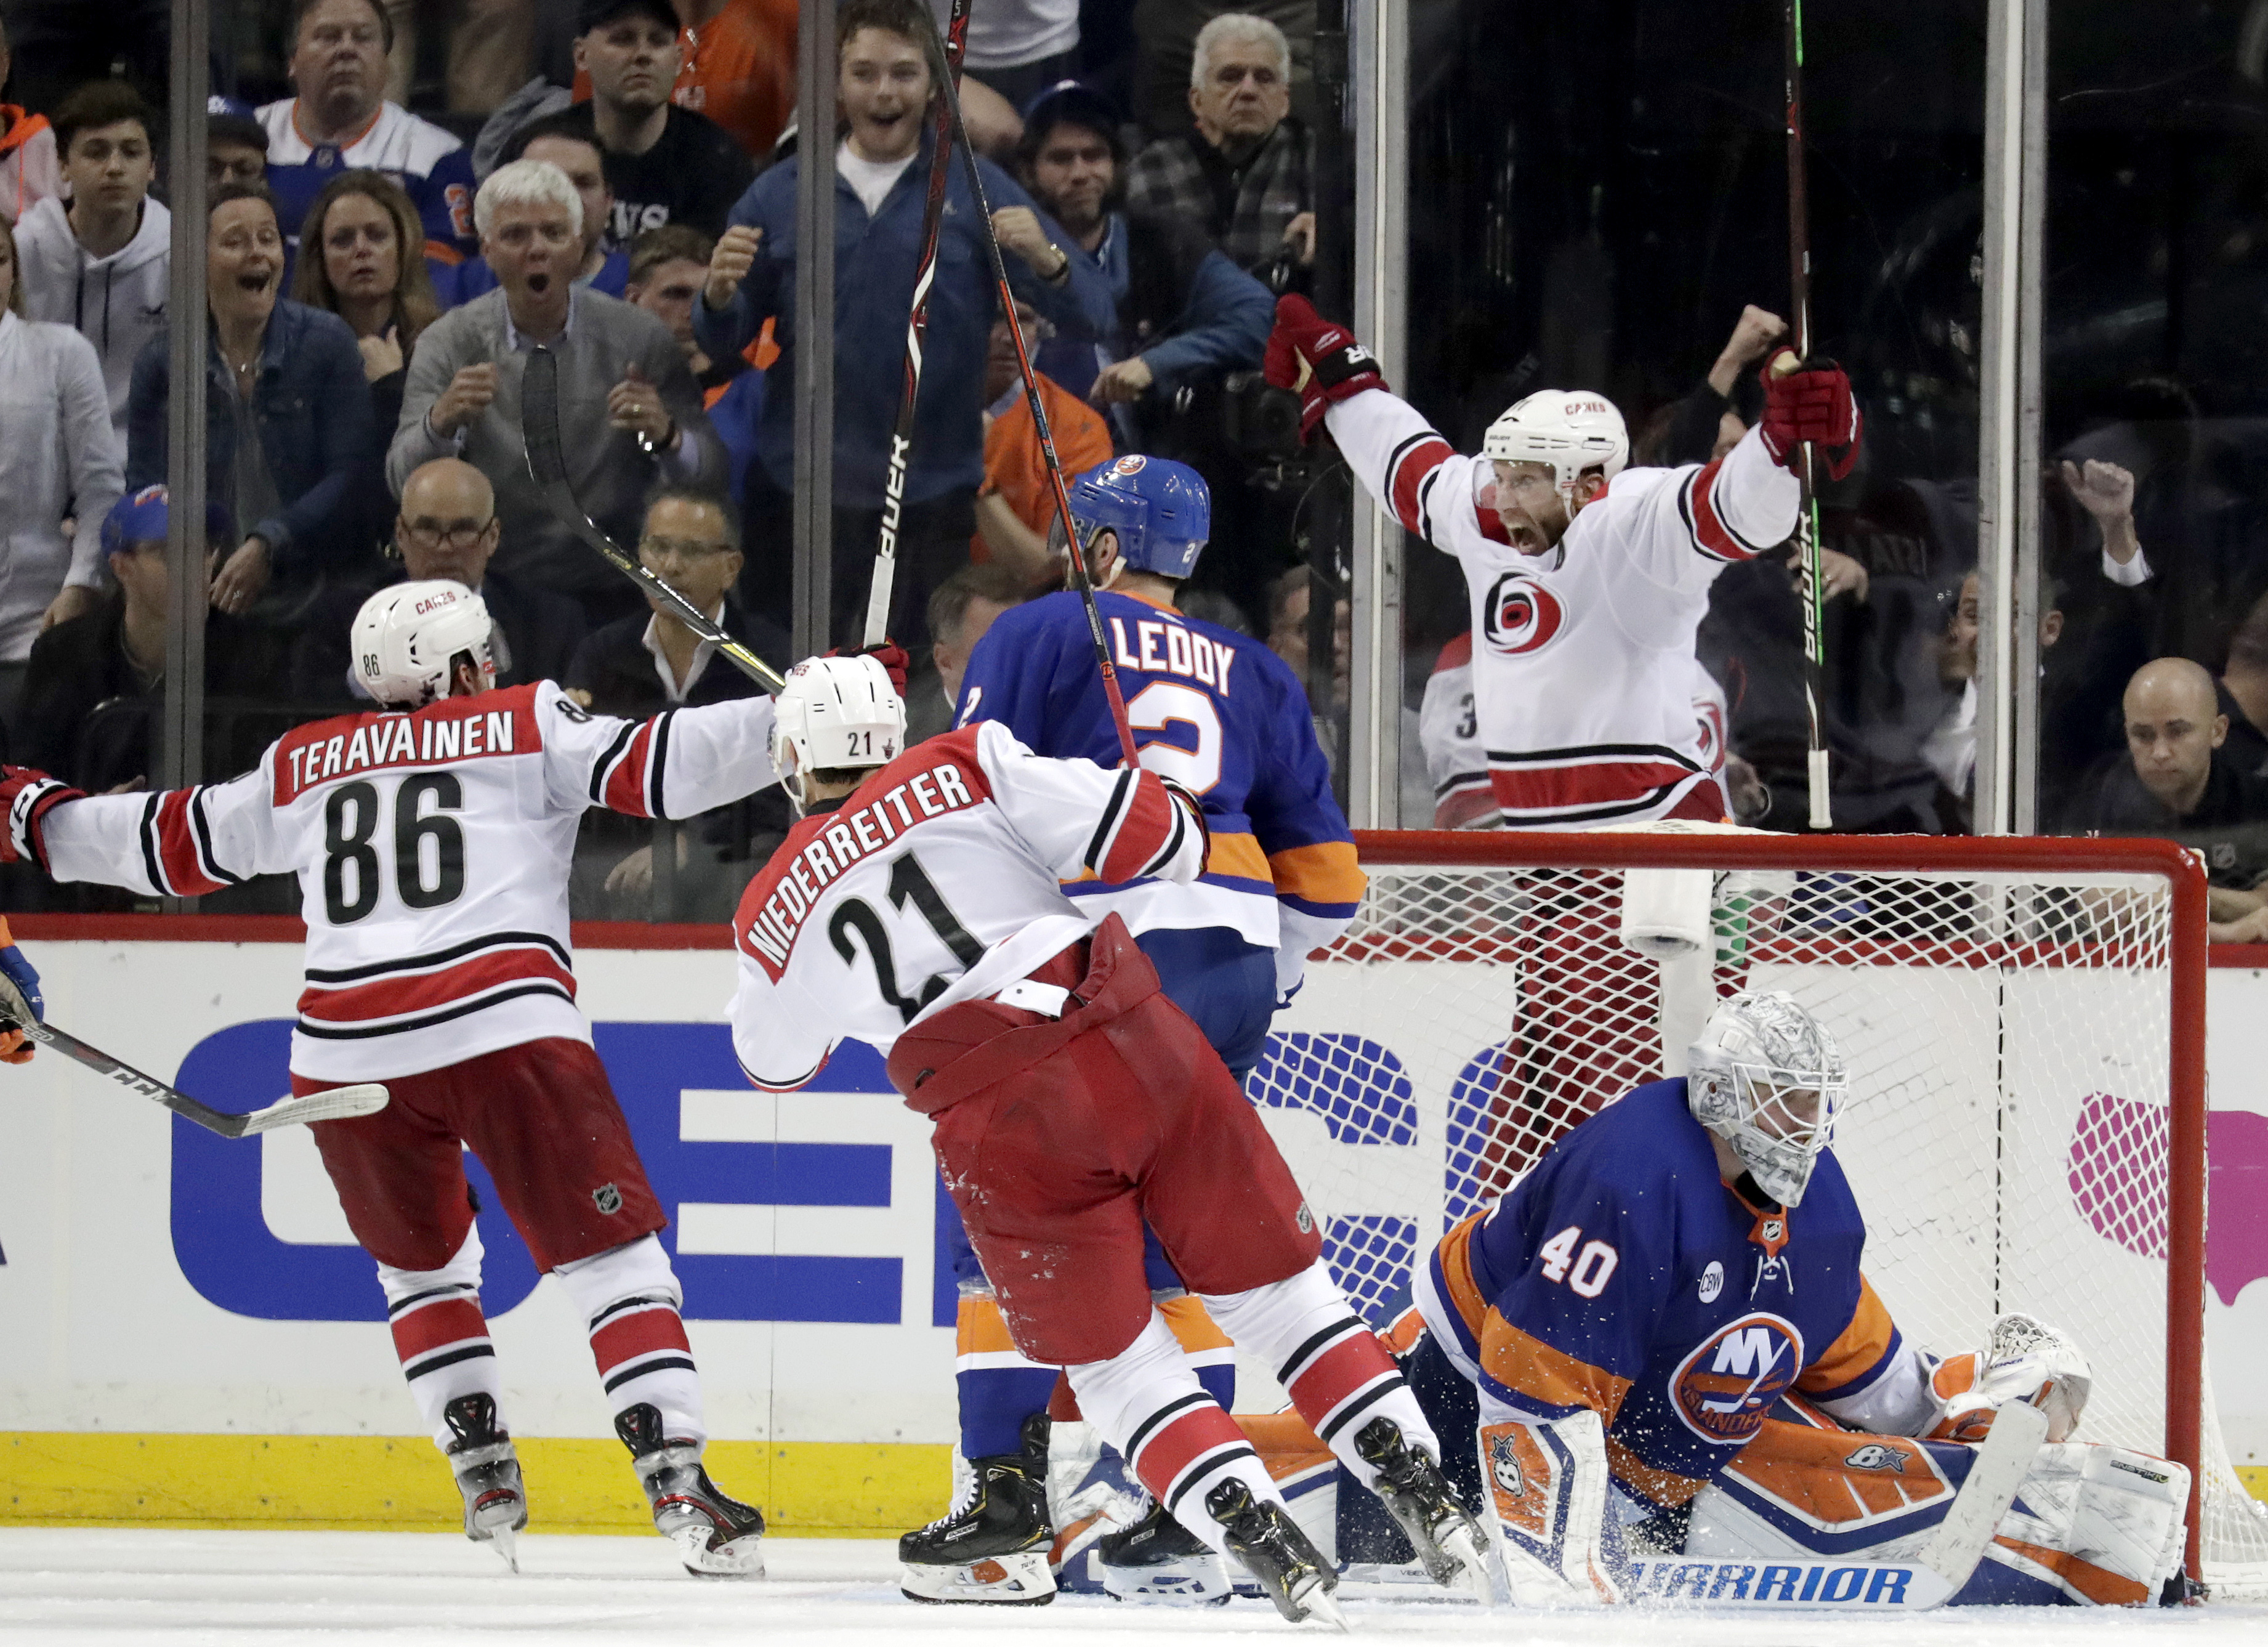 Staal scores in OT, Hurricanes top Islanders 1-0 in Game 1